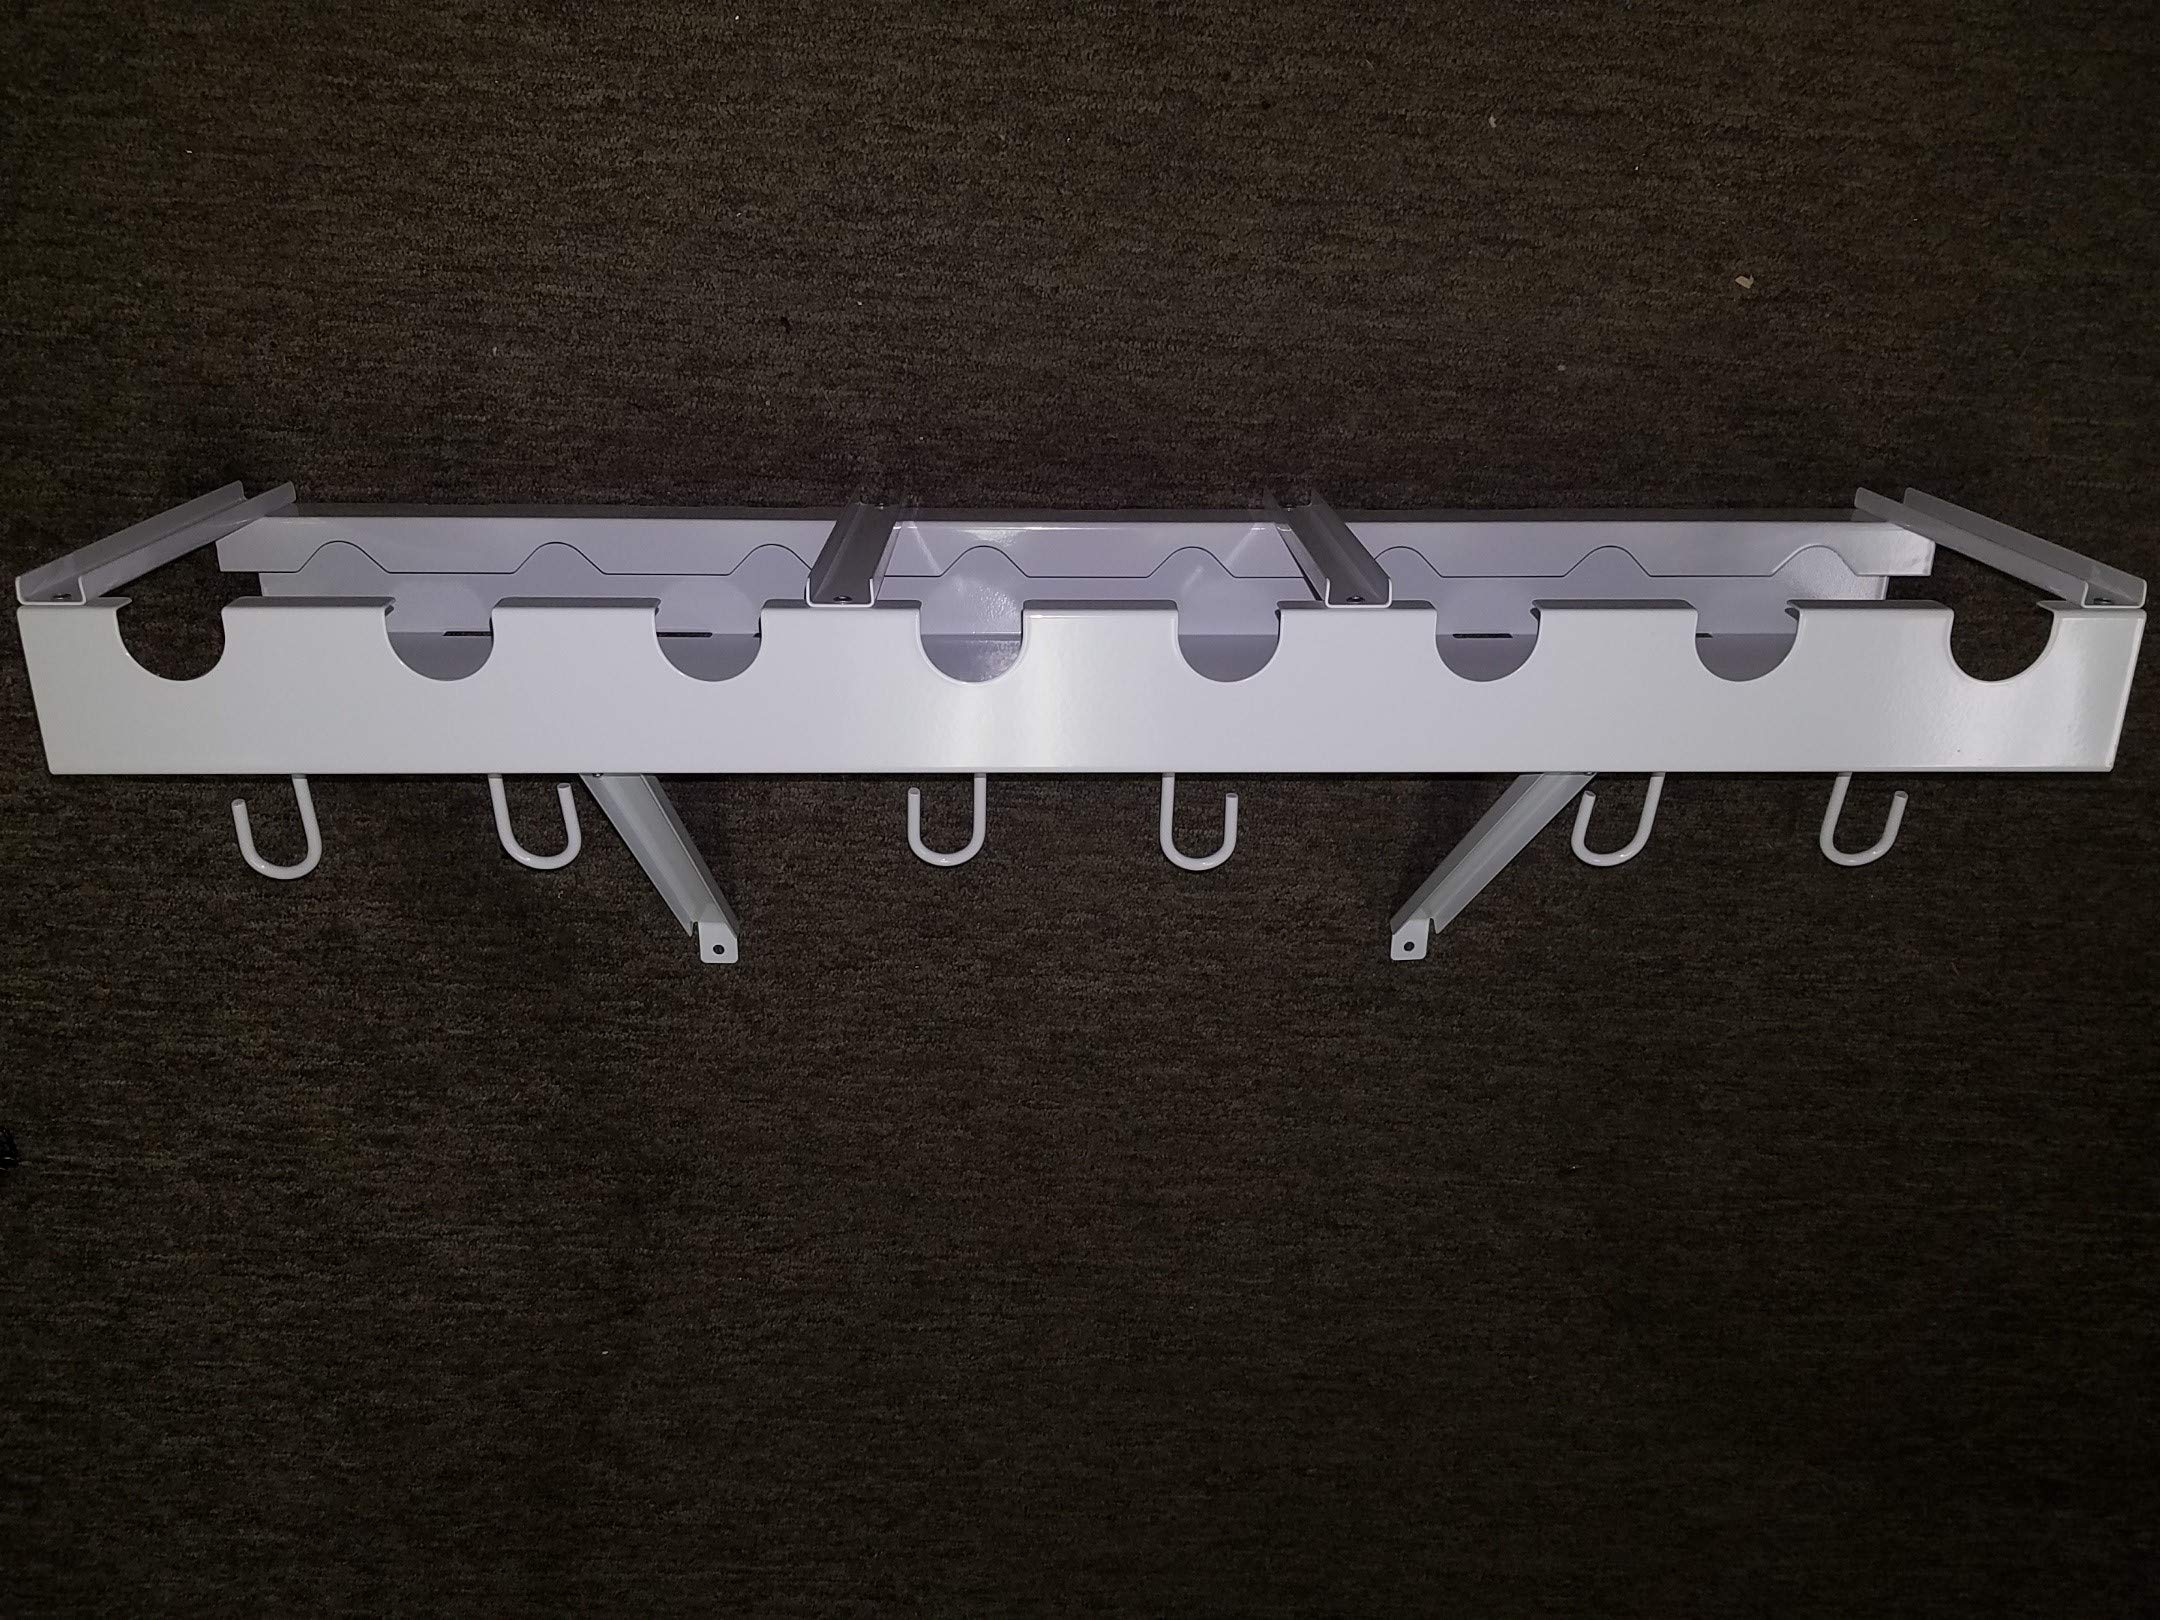 Viking Overhead Wall Mount Tool-Fishing Rod Holder by Viking Solutions (Image #1)